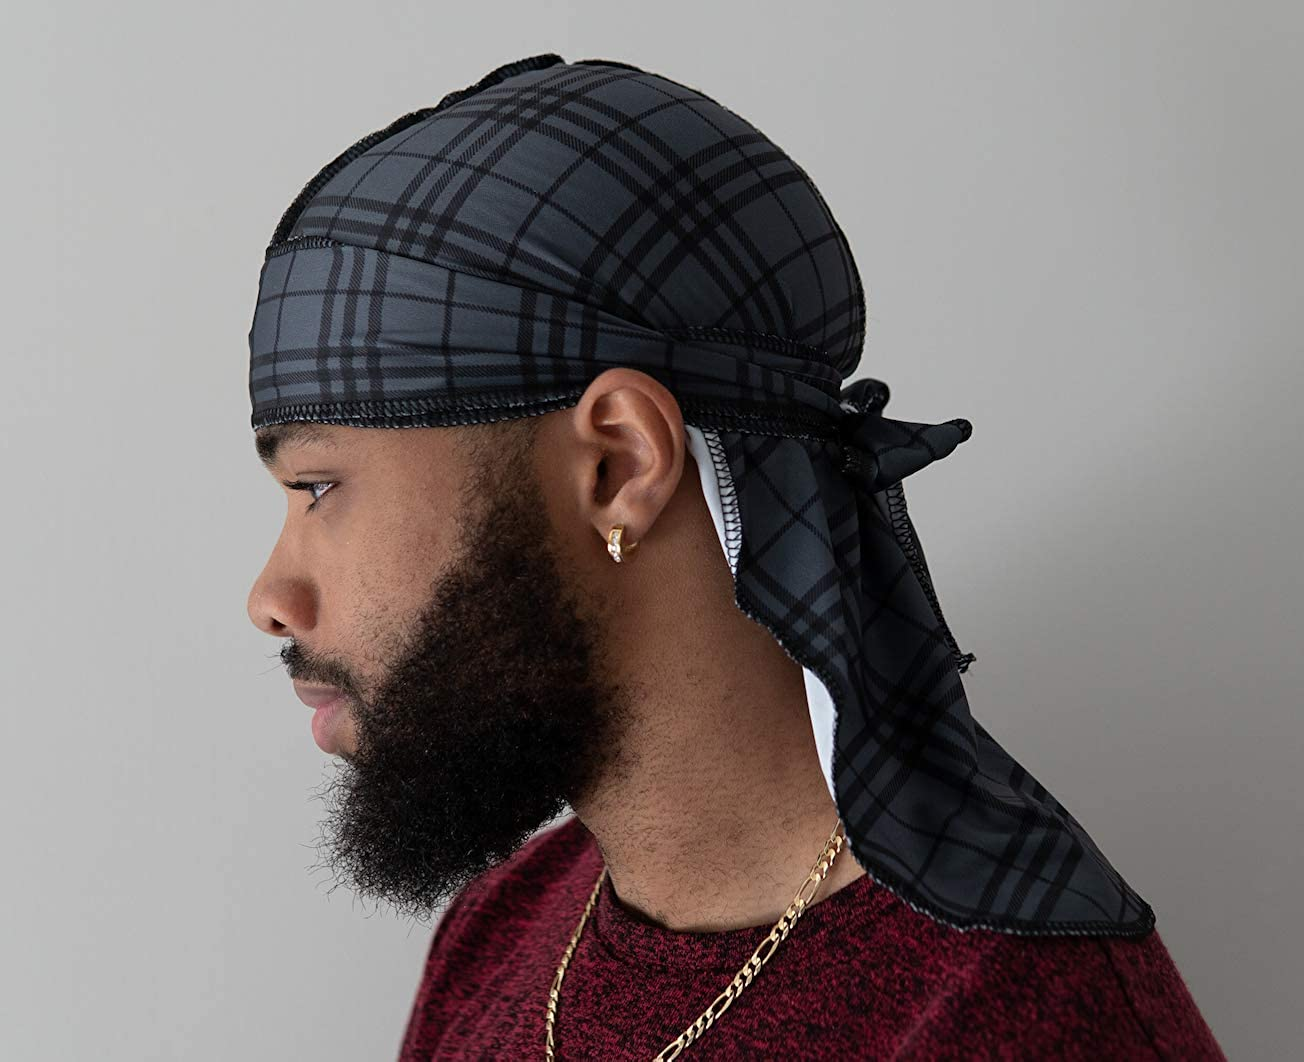 Customs Slippery Apparel Fashion Durags LV Supreme Ape /& More Designer Durag 60+ Designs